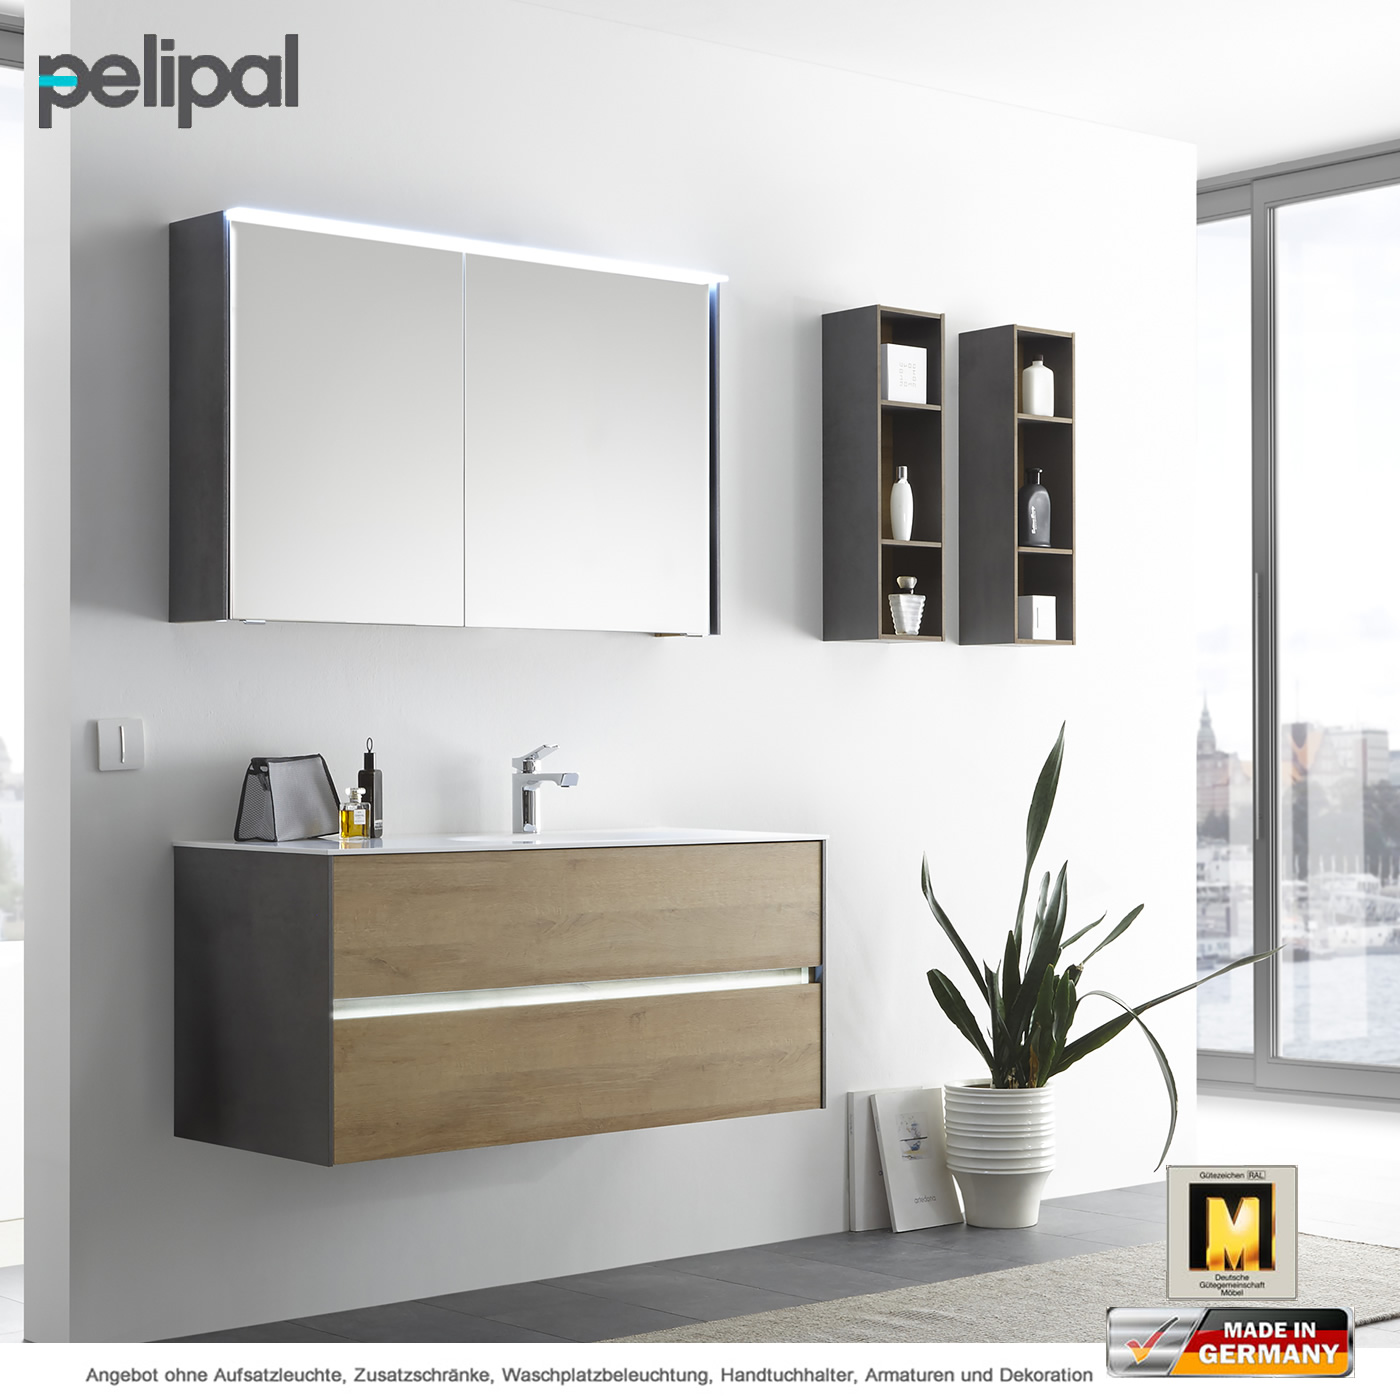 pelipal solitaire 6010 badm belset 113 cm mit led spiegelschrank und waschtischset 2 ausz ge. Black Bedroom Furniture Sets. Home Design Ideas